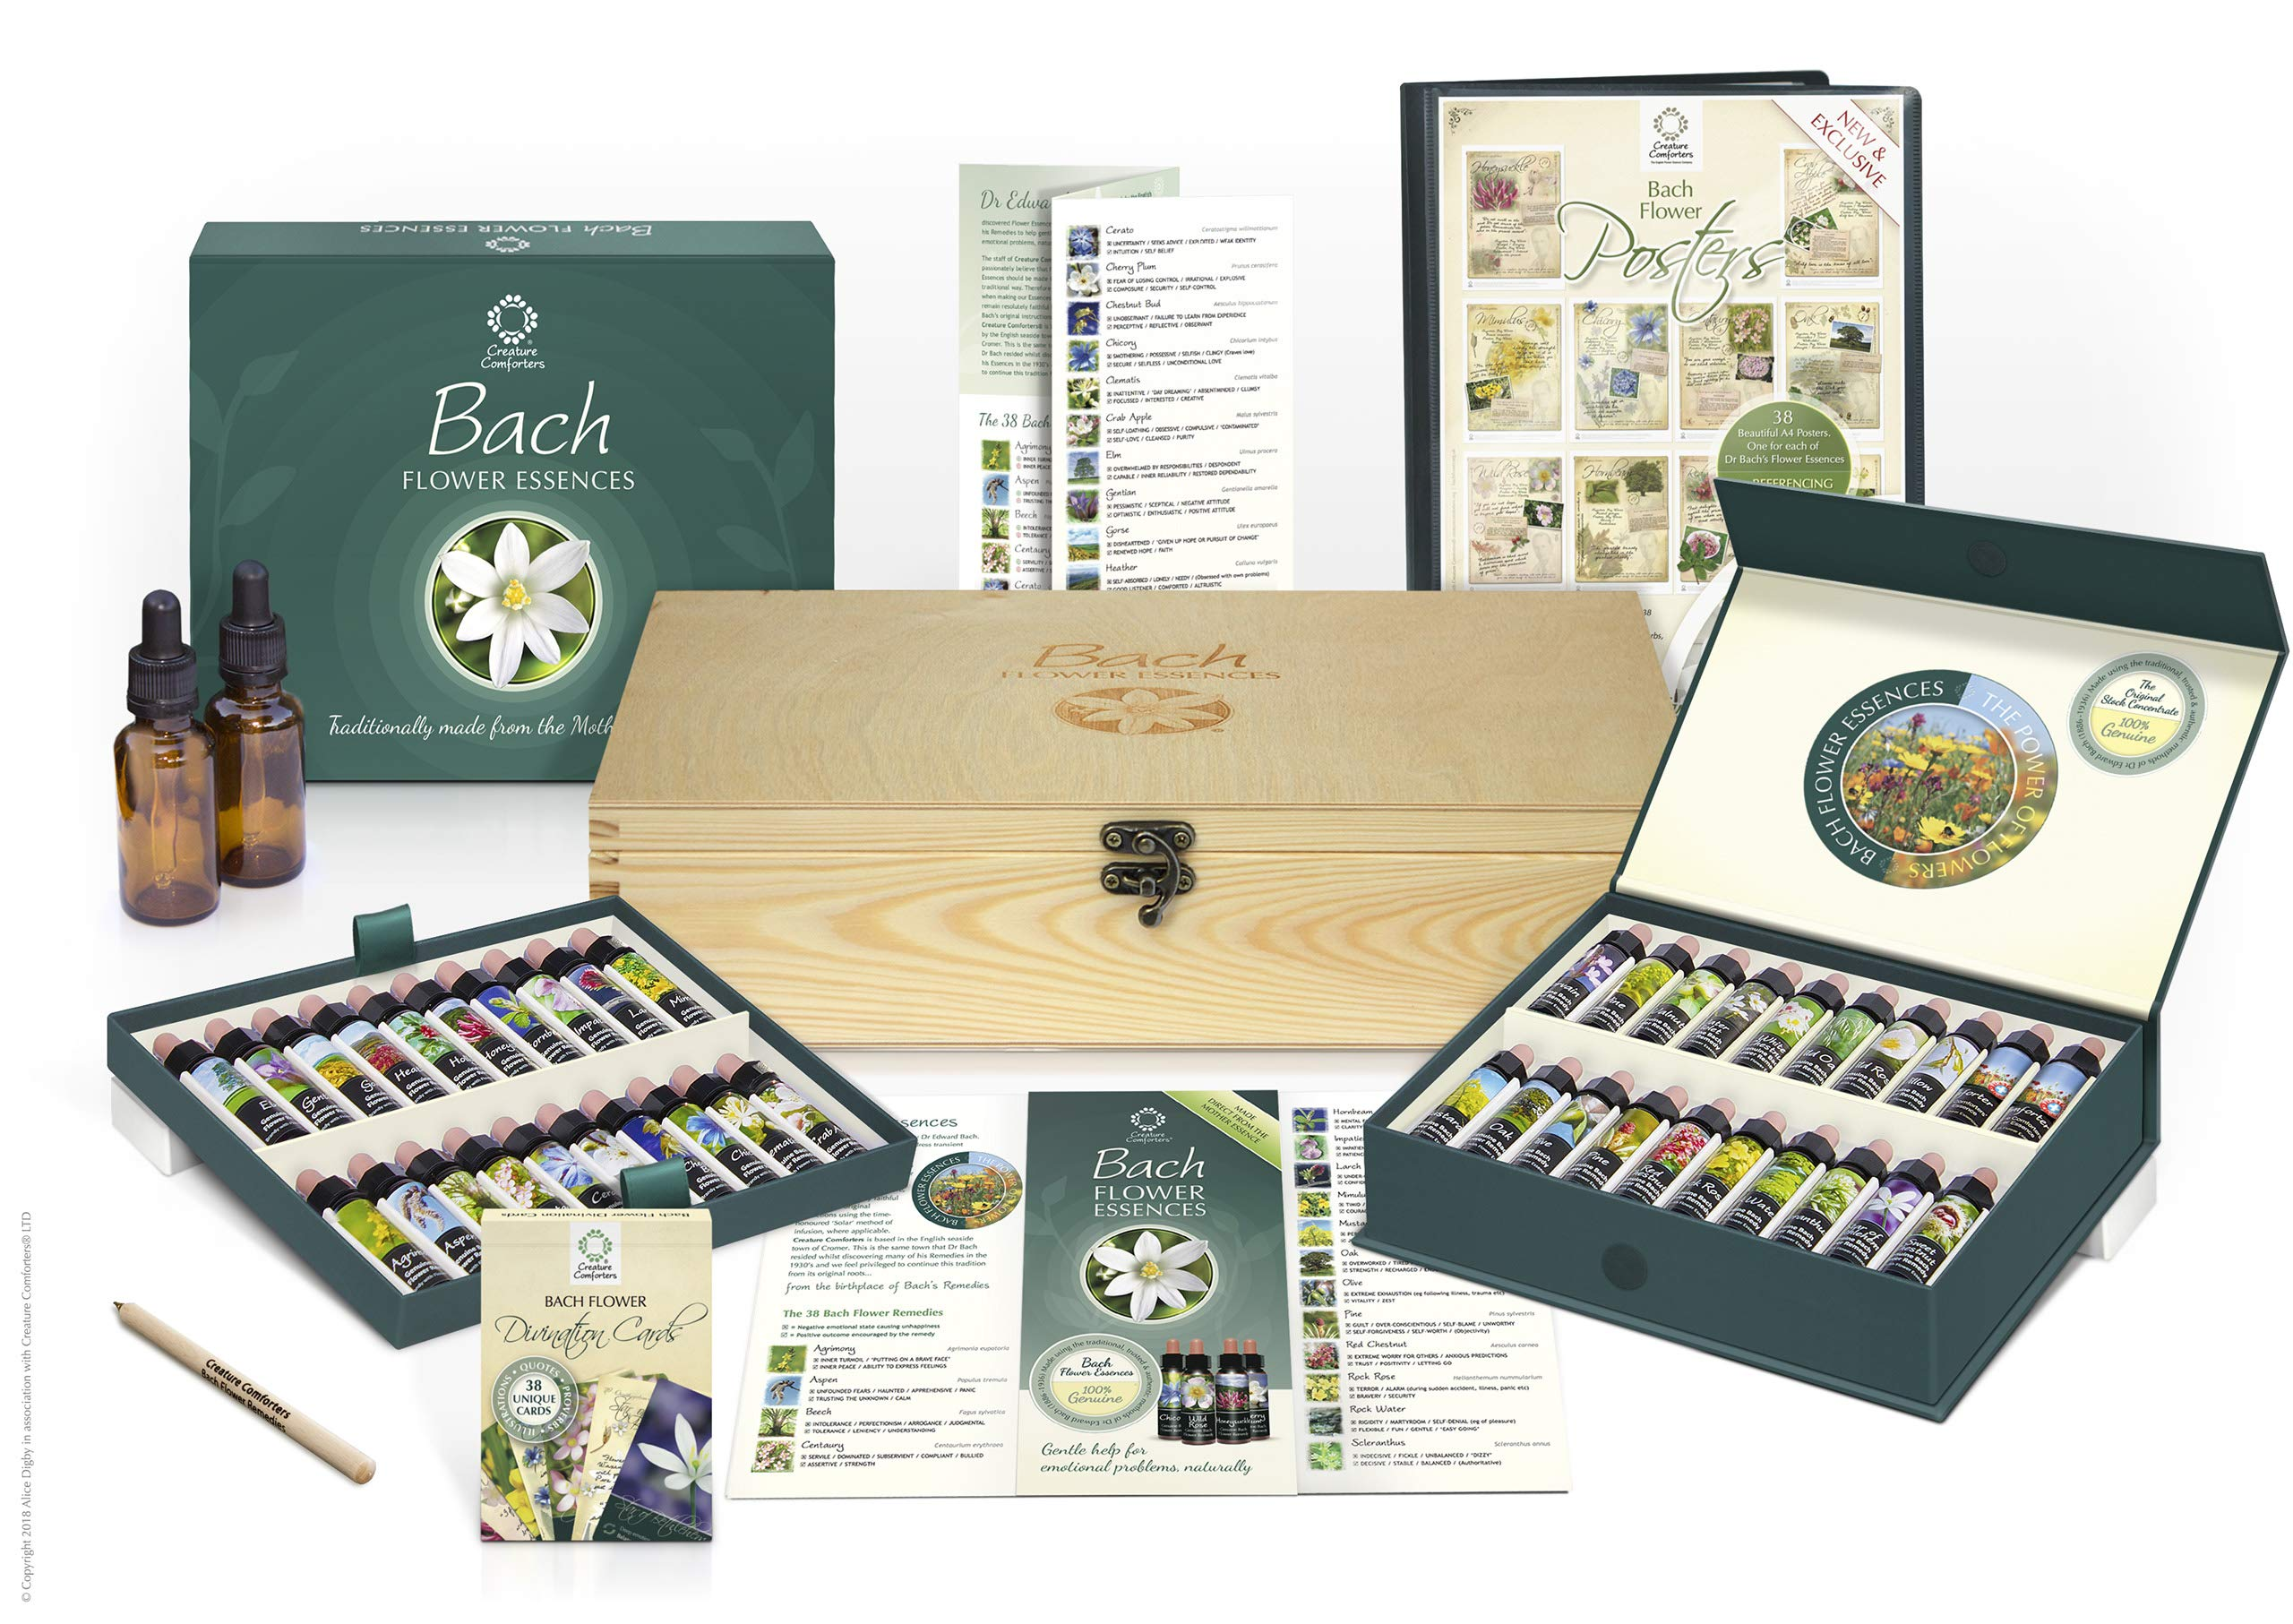 Bach Flower Remedy Complete Kit in Wooden Case. 40 Quality Essences, Pack 38 Divination Cards & 38 Posters, 2 Dosage Bottles. Premium Gift Set Box. by Creature Comforters